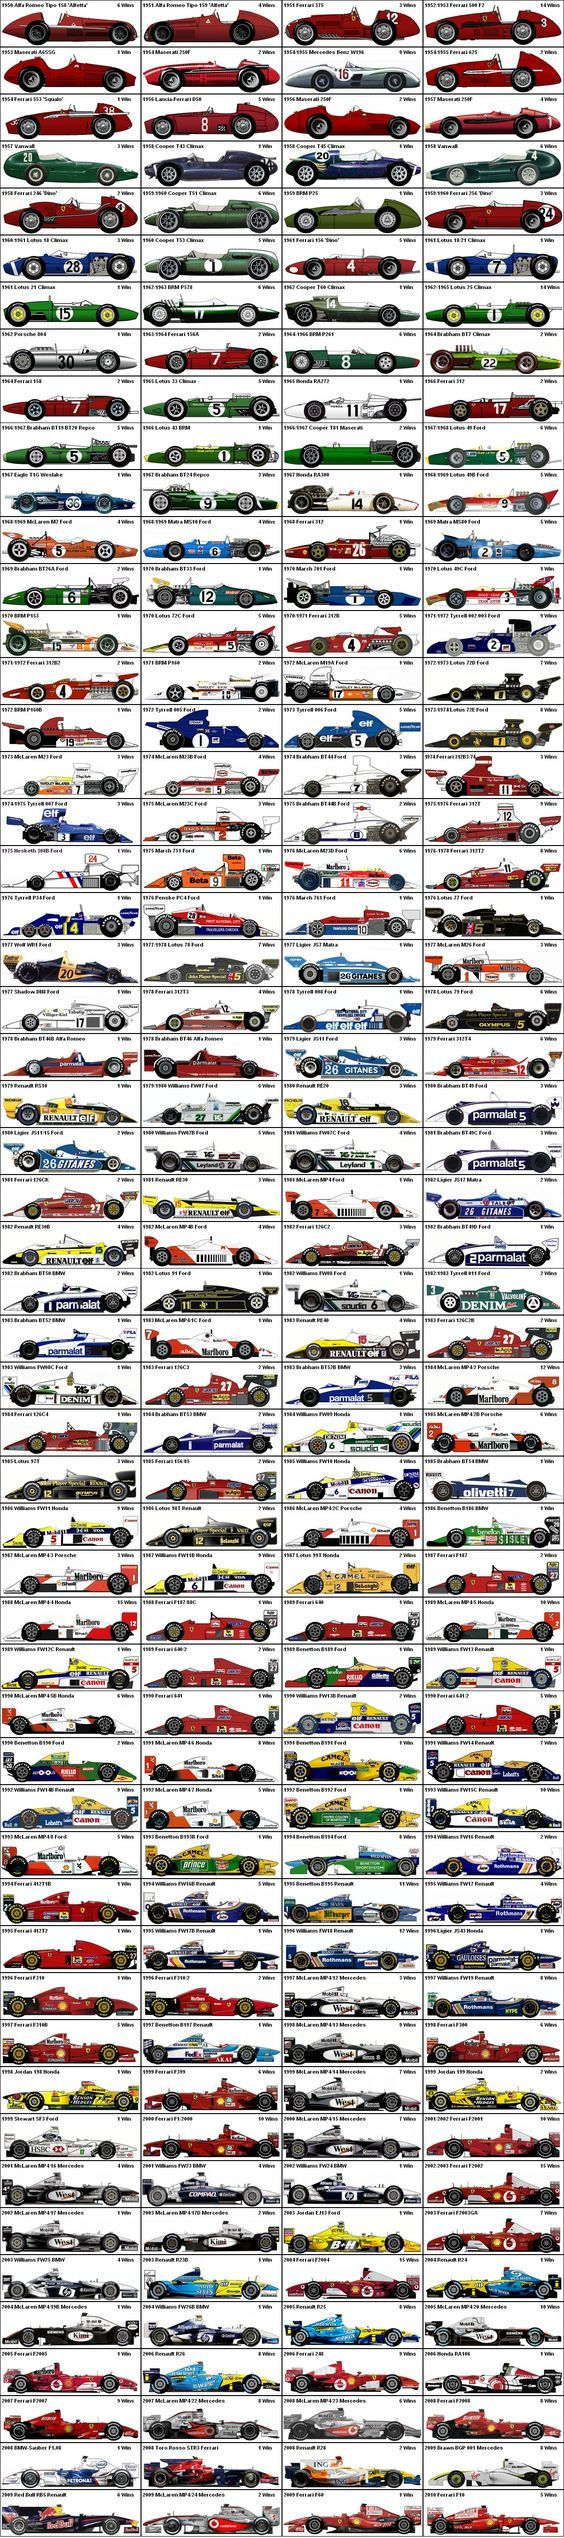 All F1 Winners (1950-2010):